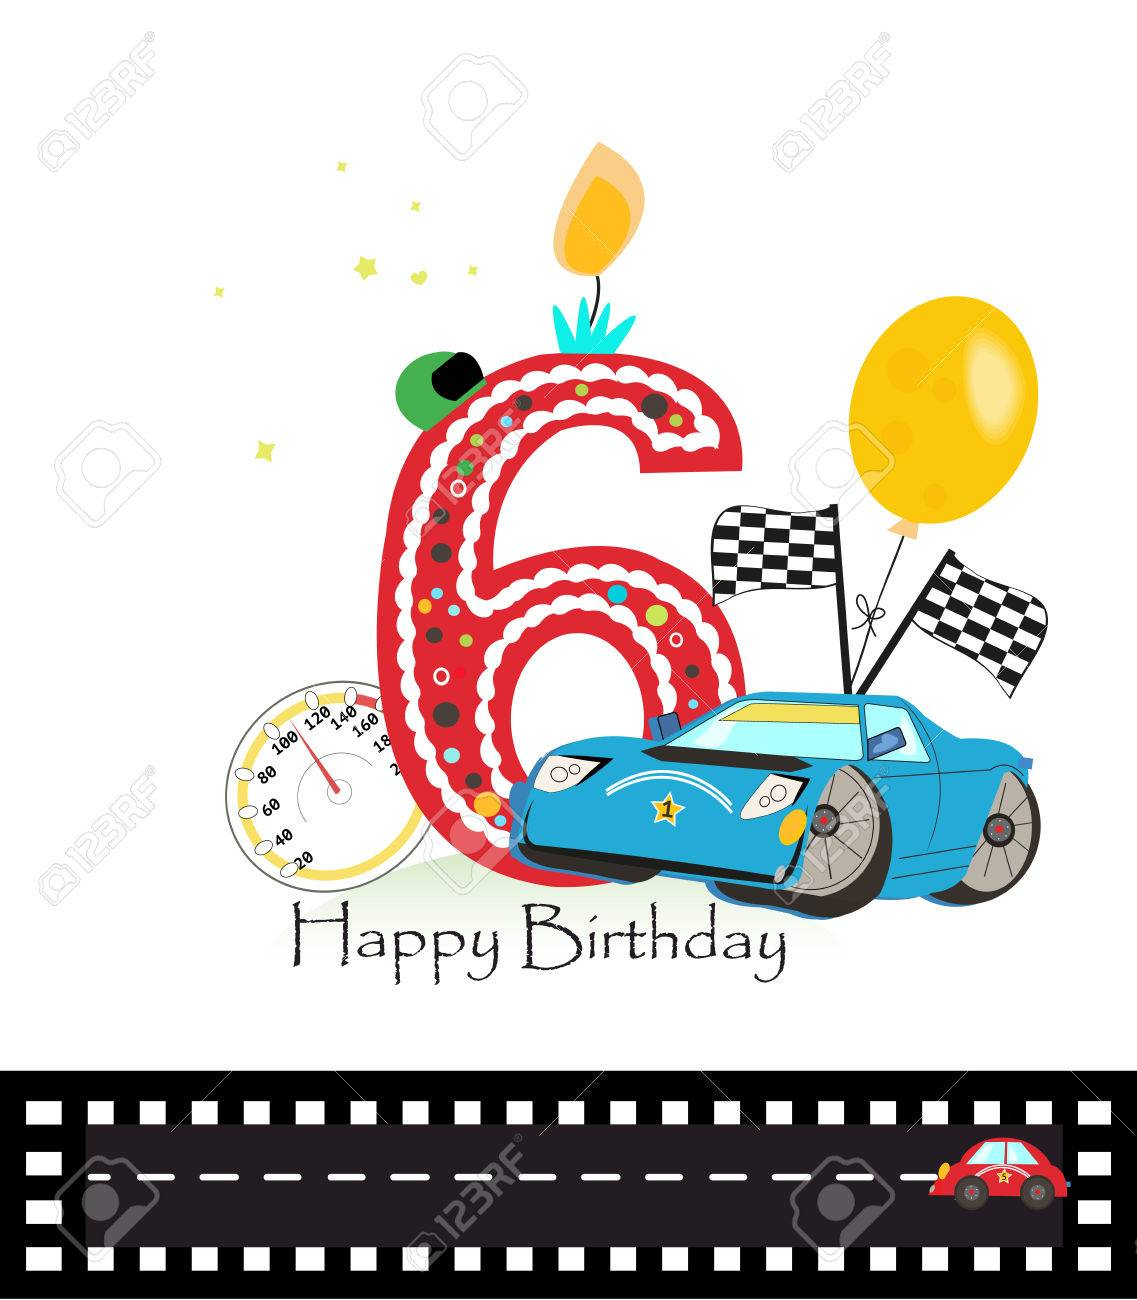 Happy Sixth Birthday Candle Baby Boy Greeting Card With Race Car Vector Illustration Stock